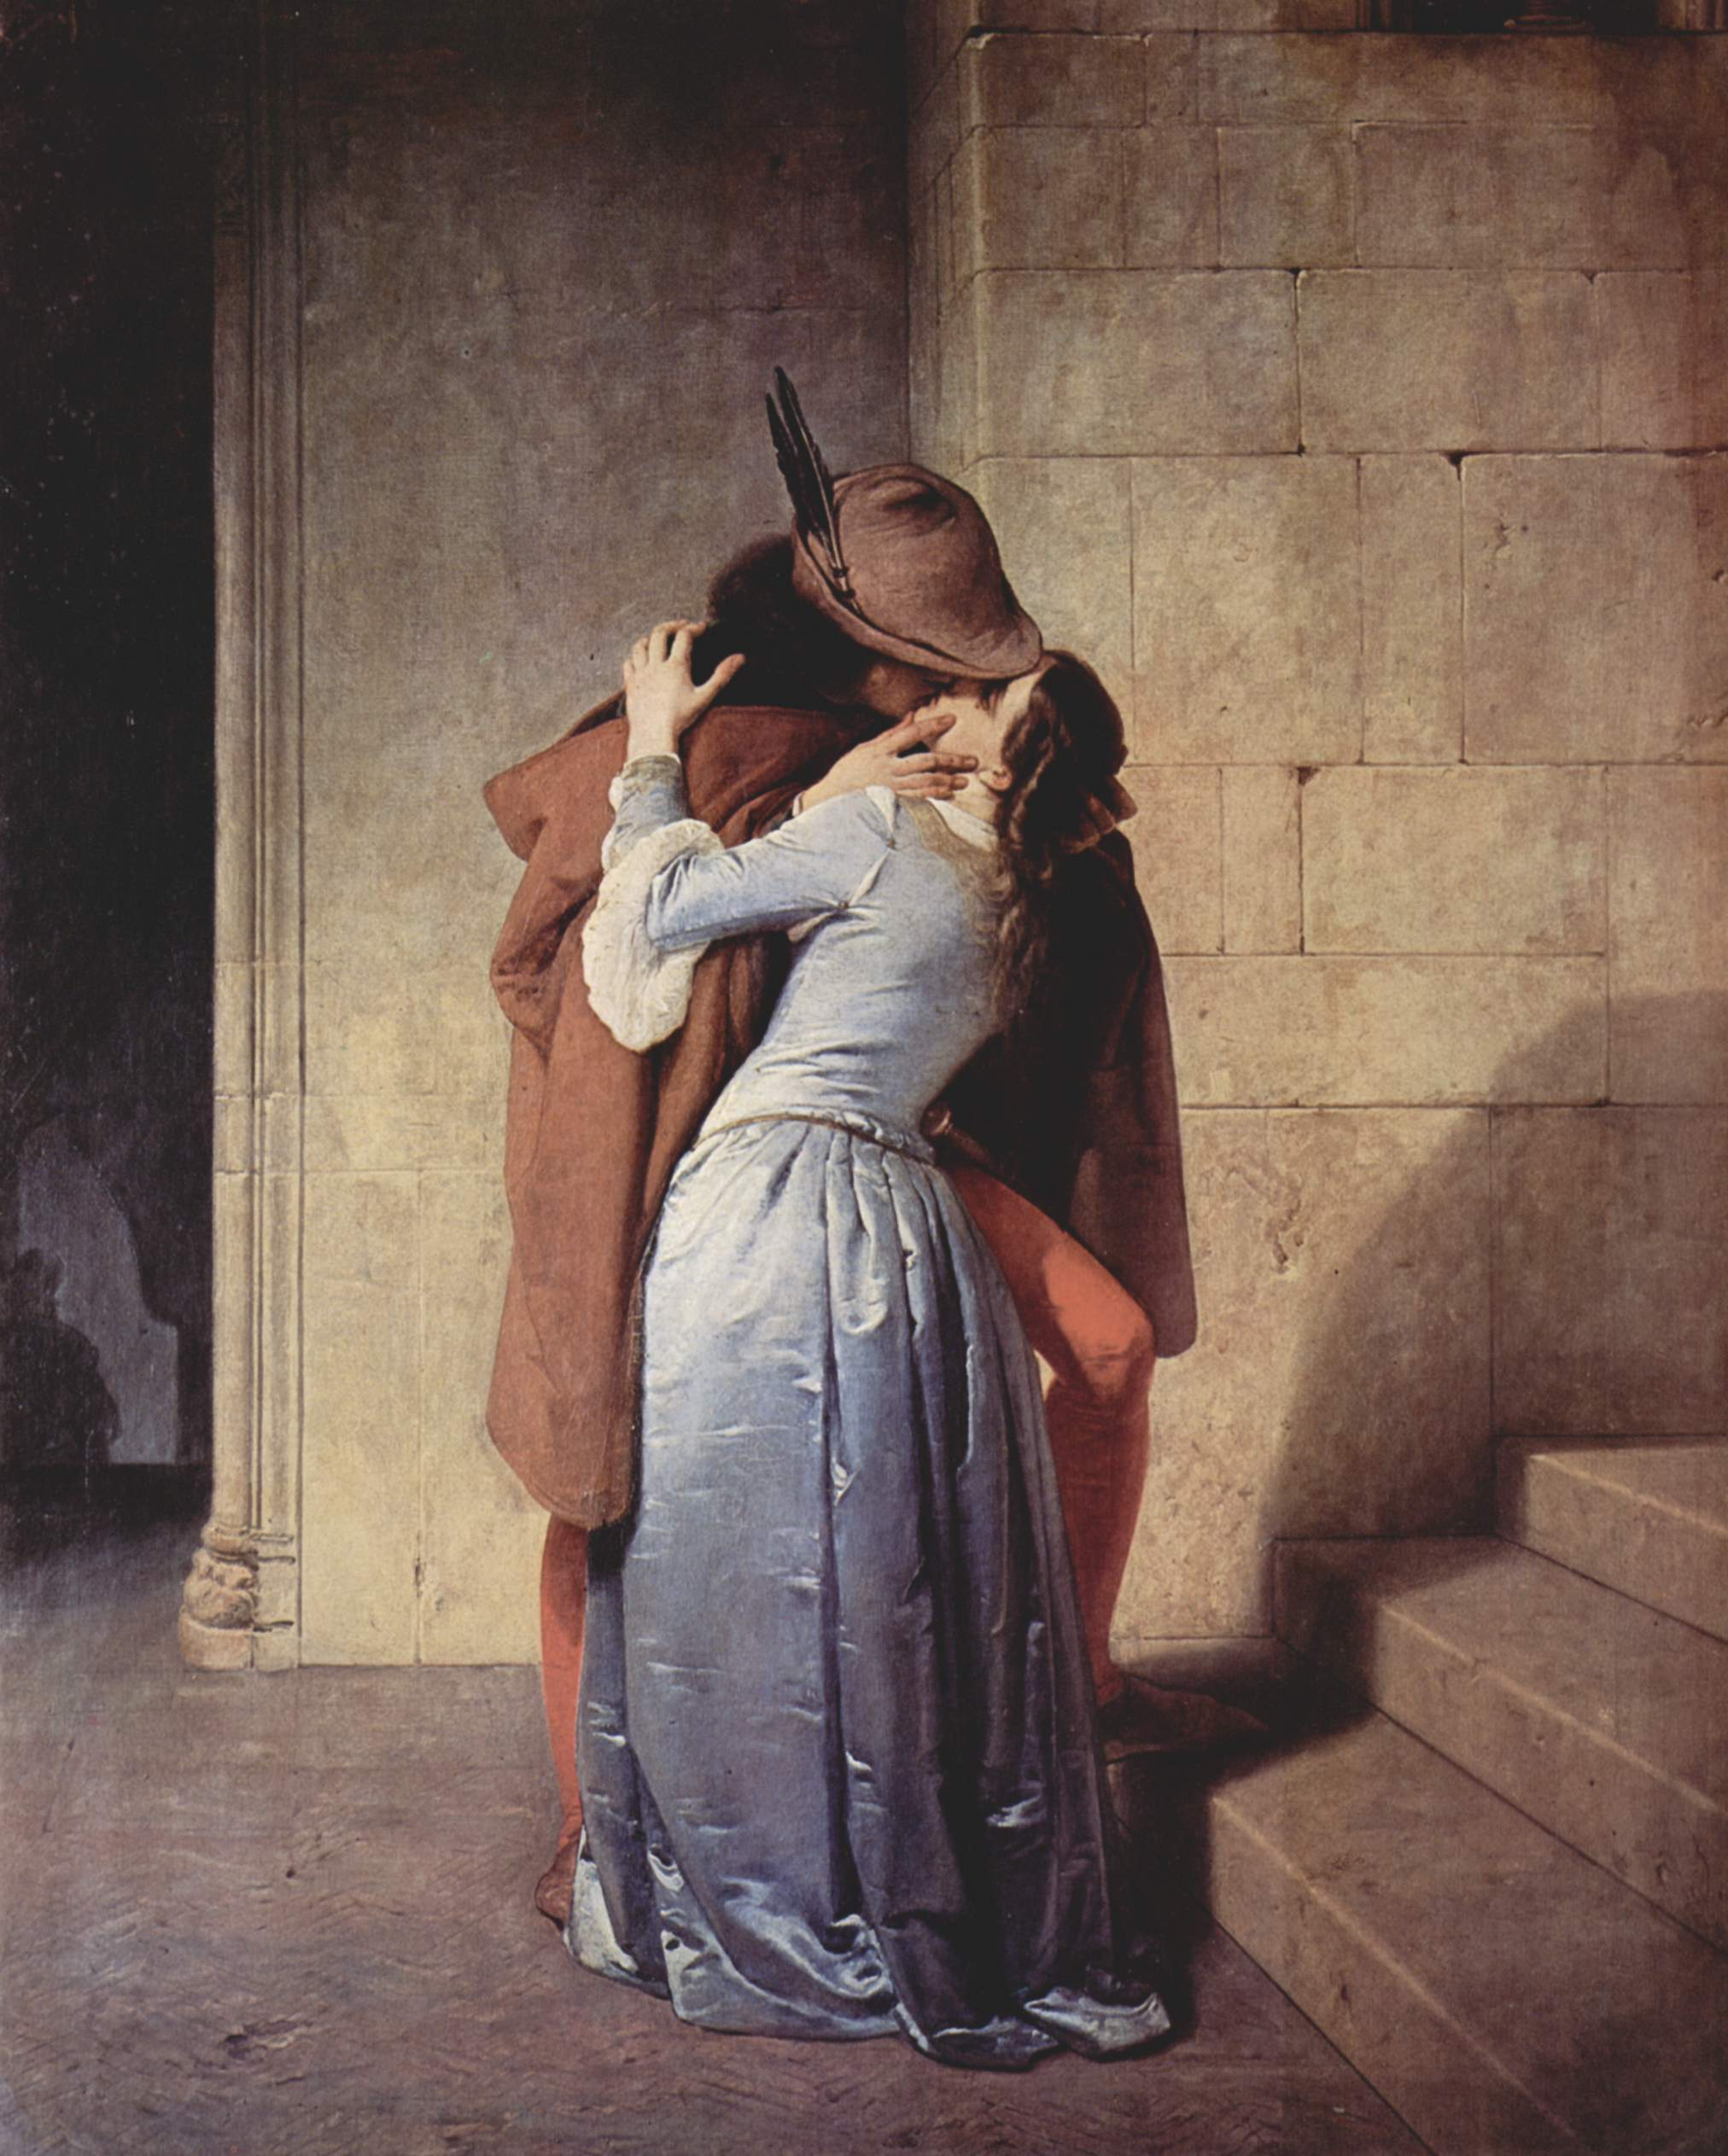 fig. 8 Francesco Hayez, Bacio, 1859